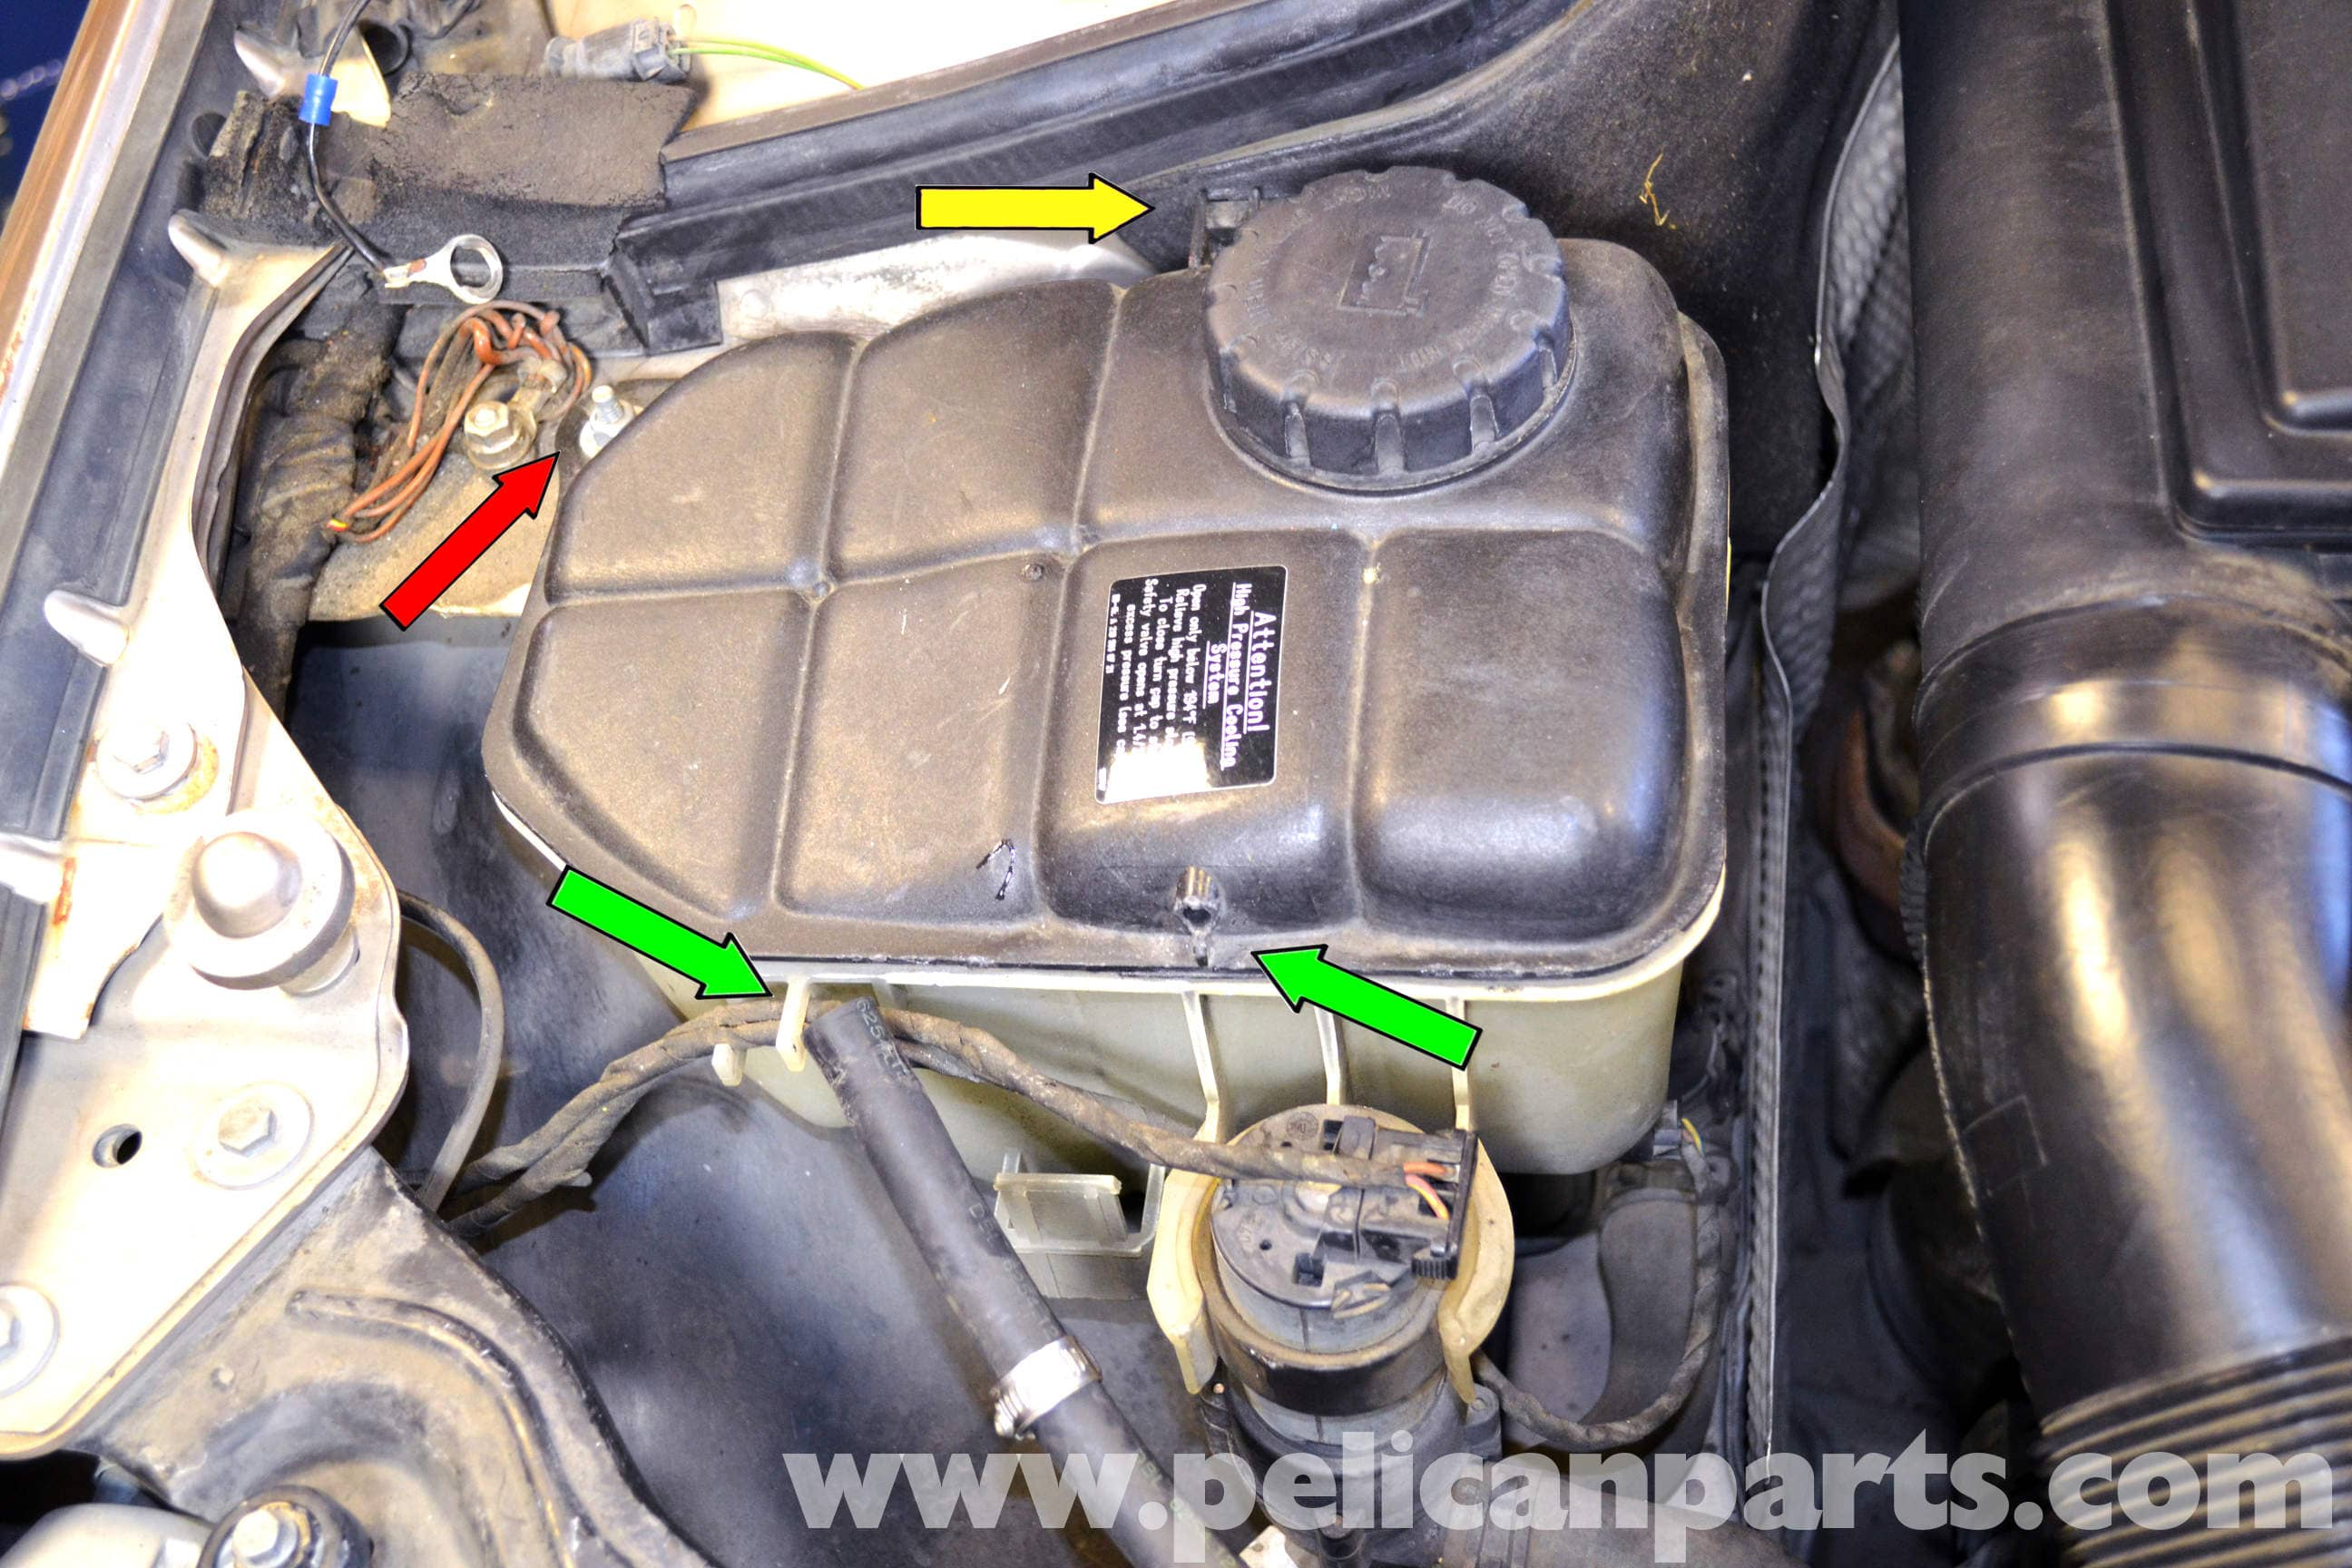 WATER Coolant Expansion Tank Replacement on 2000 mercedes clk320 coupe